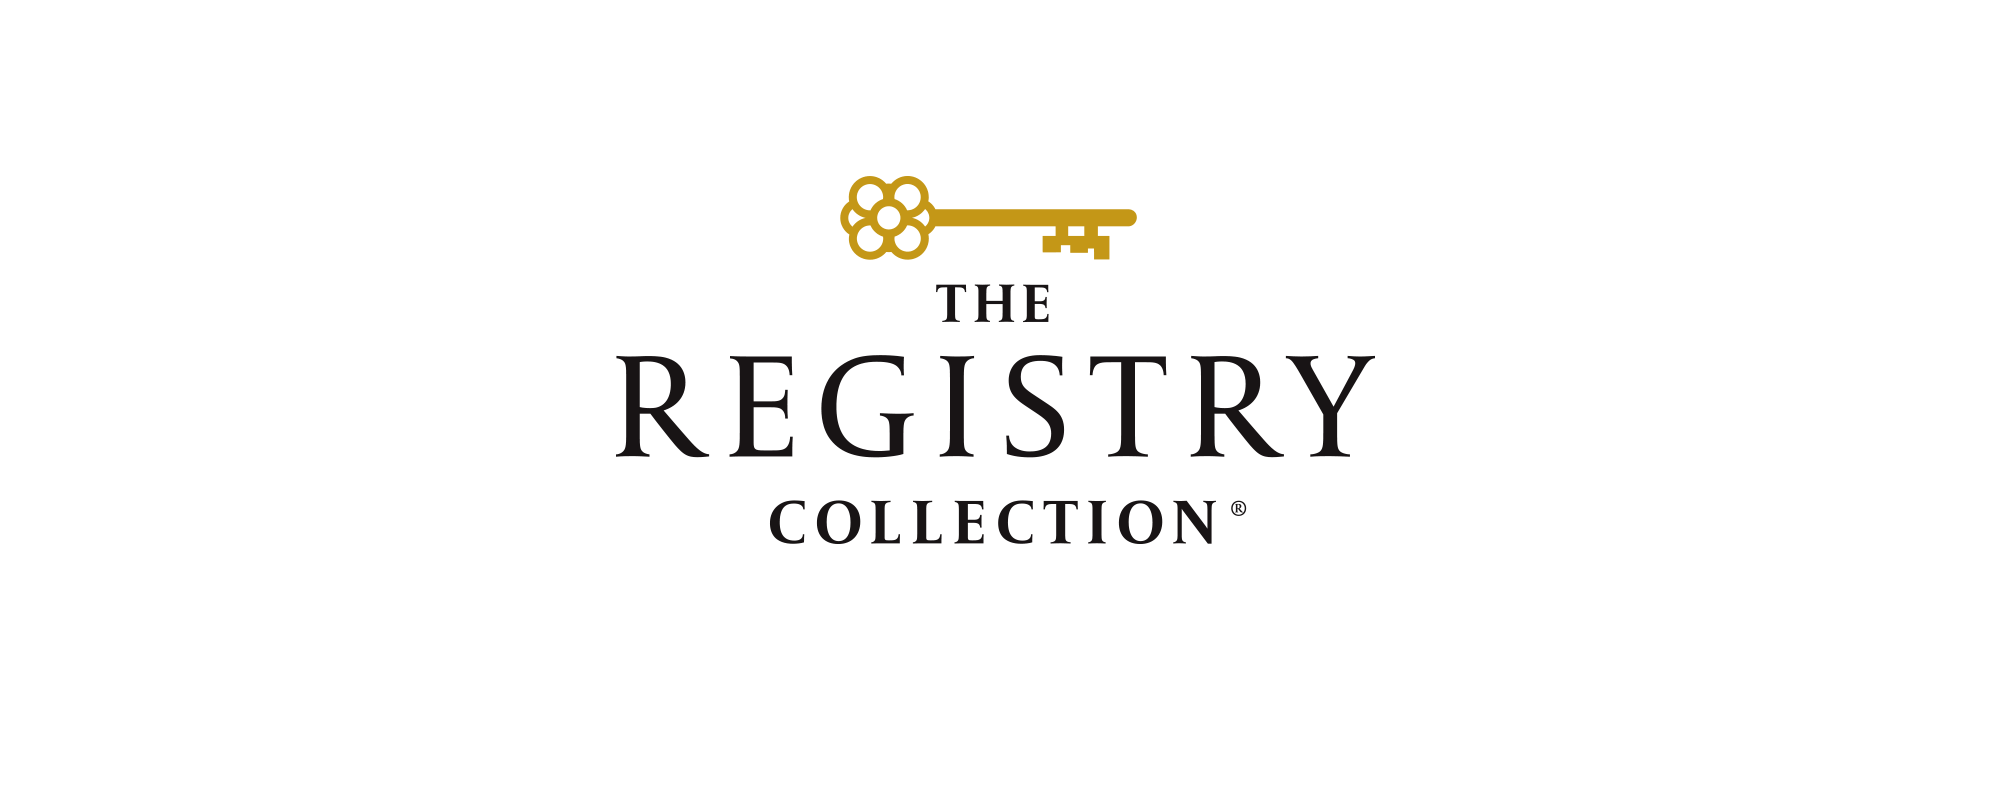 The Registry Collection logo